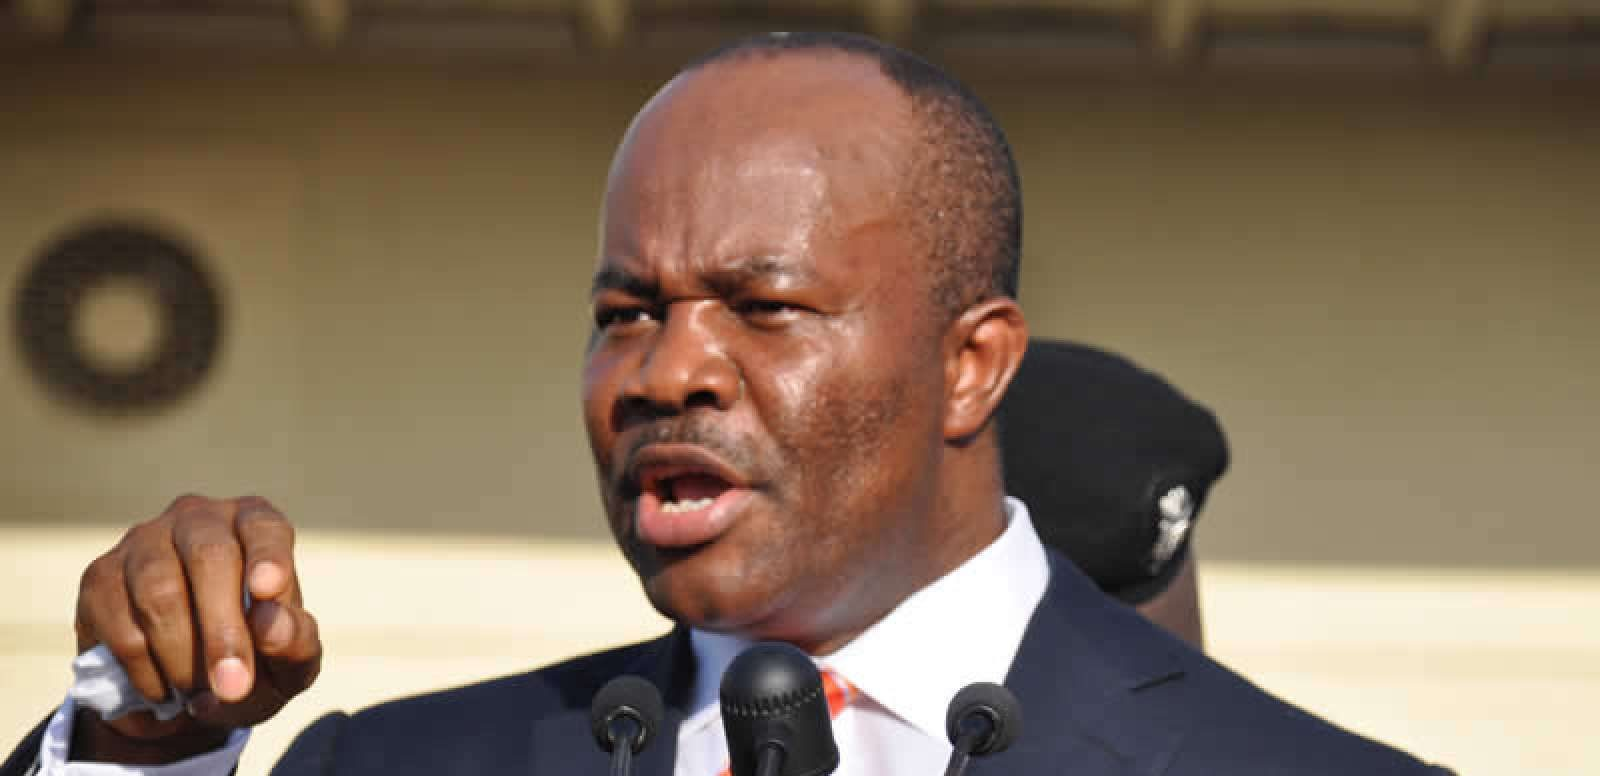 Akpabio Sues Nunieh Over Sexual Harassment Allegation